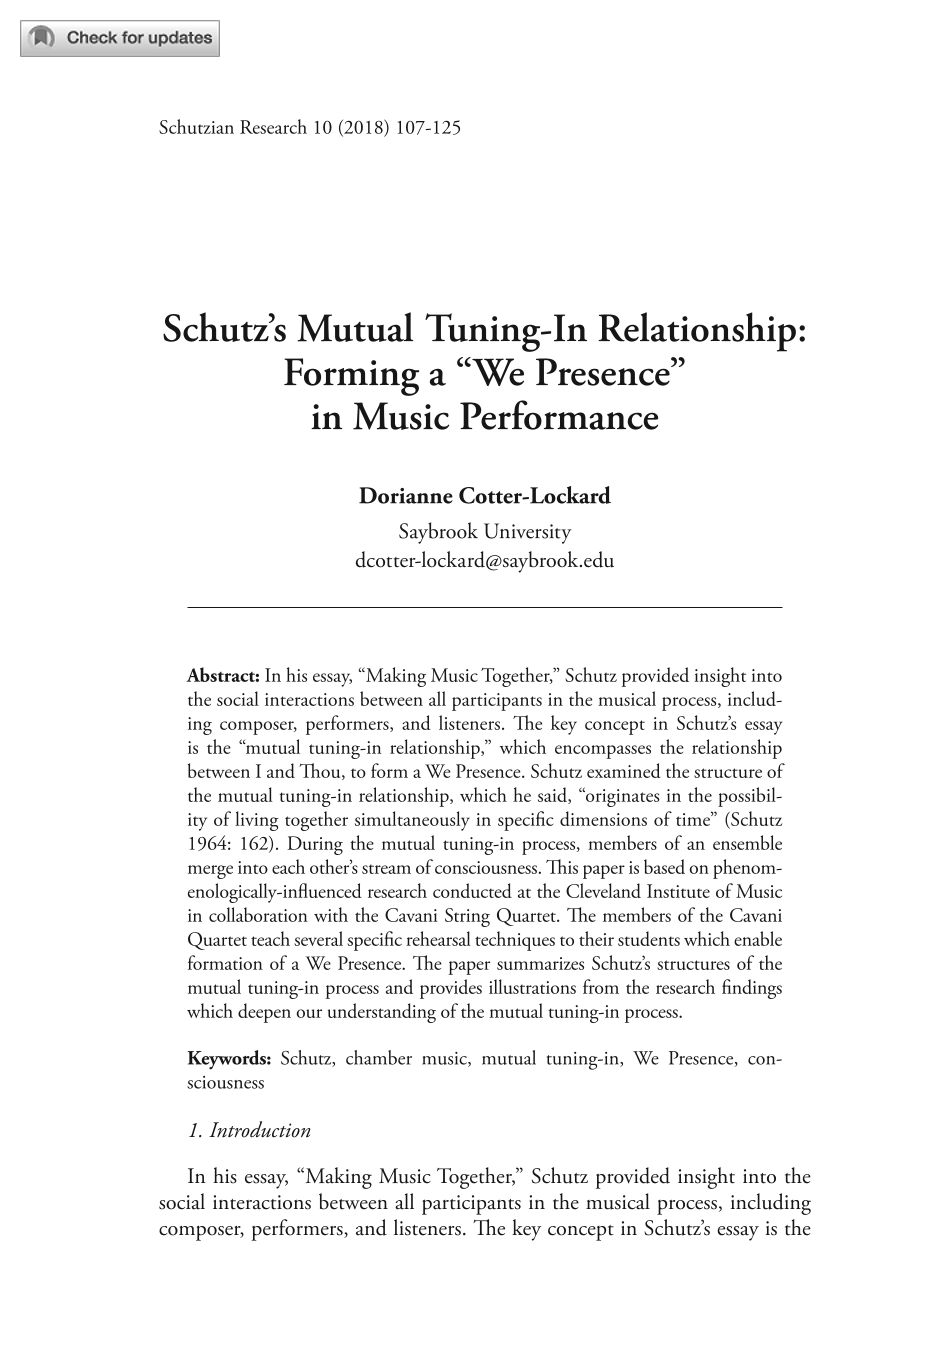 """Schutz's Mutual Tuning-in Relationship: Forming a """"We-Presence"""" in"""